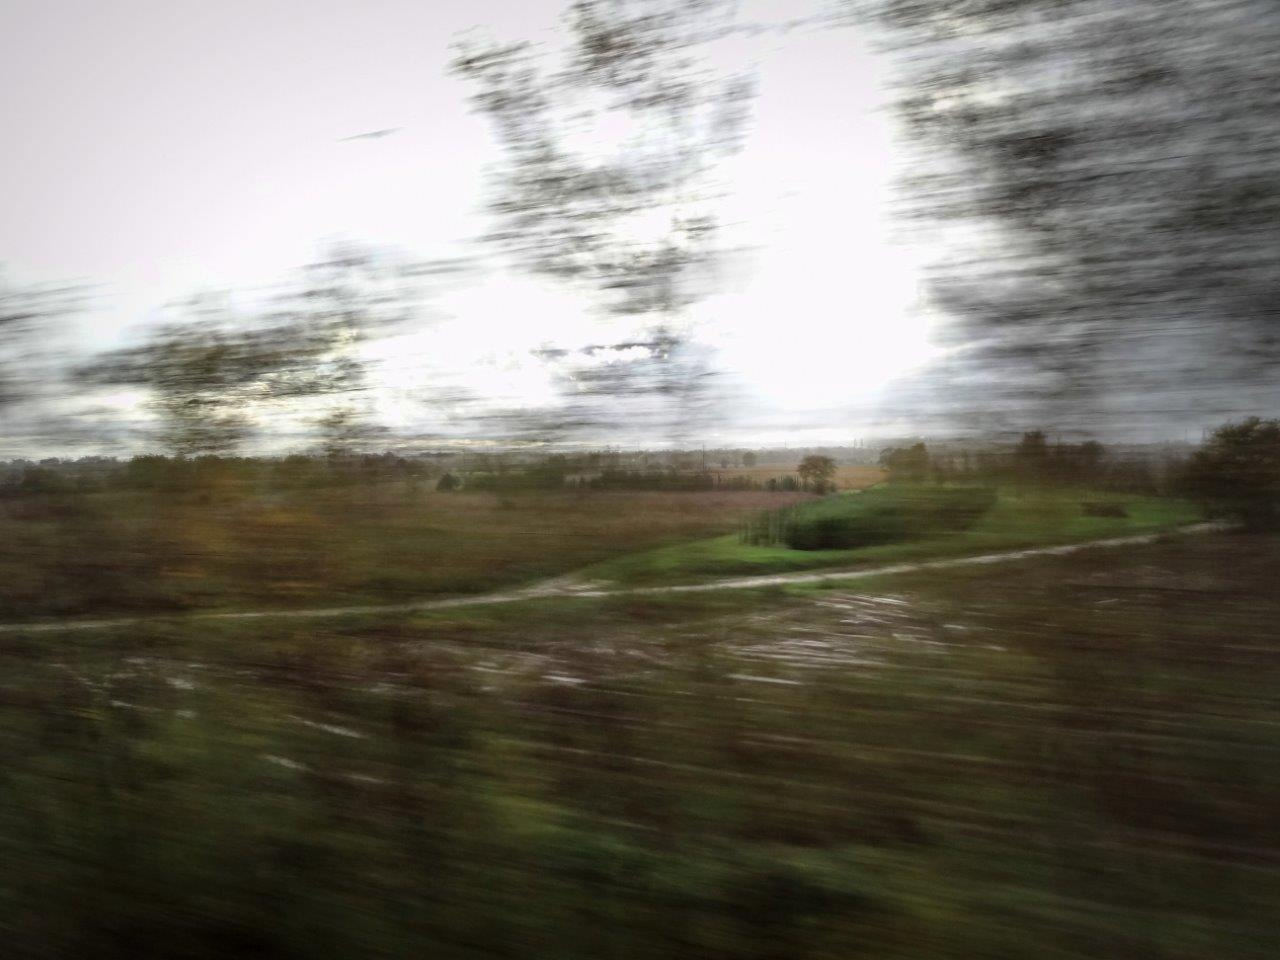 Shapes by train  by Matteo Venturini